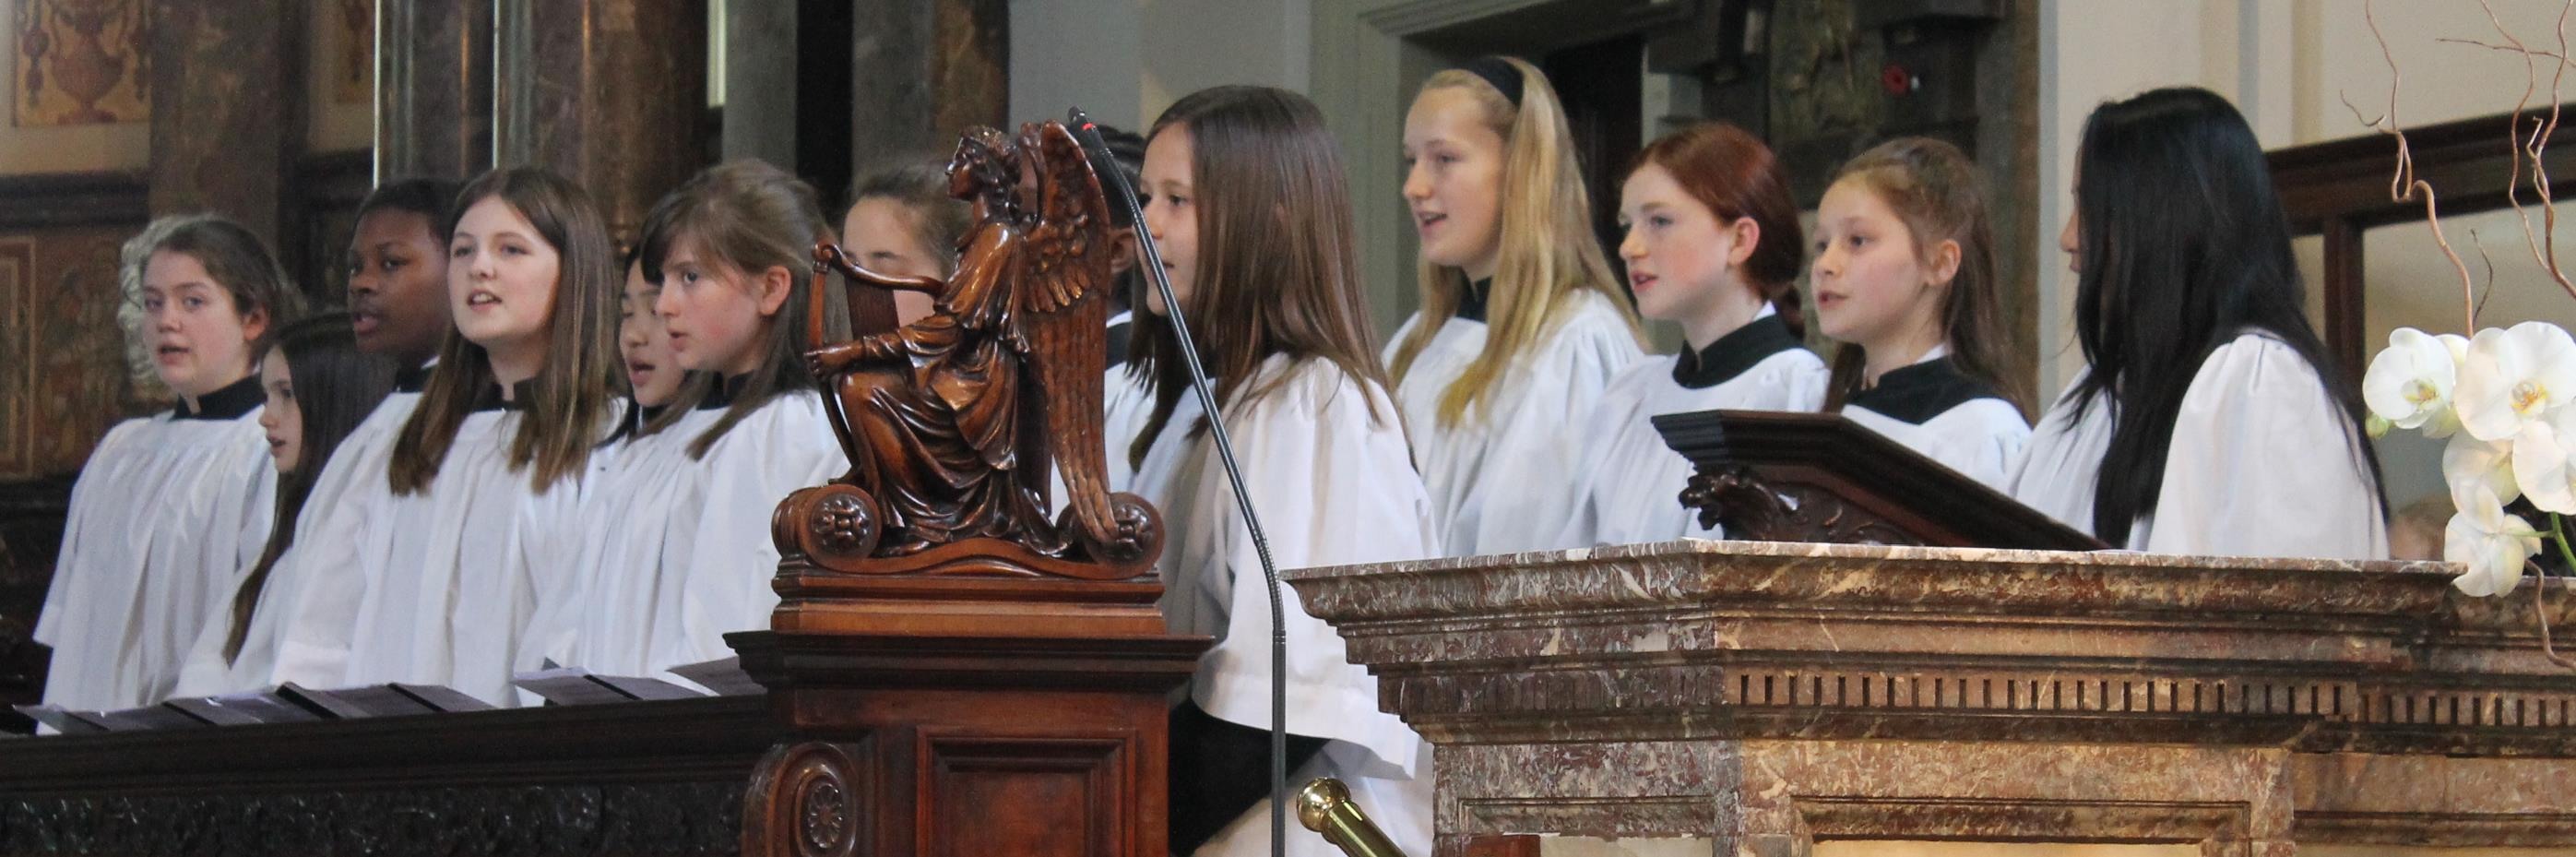 chapel_choir